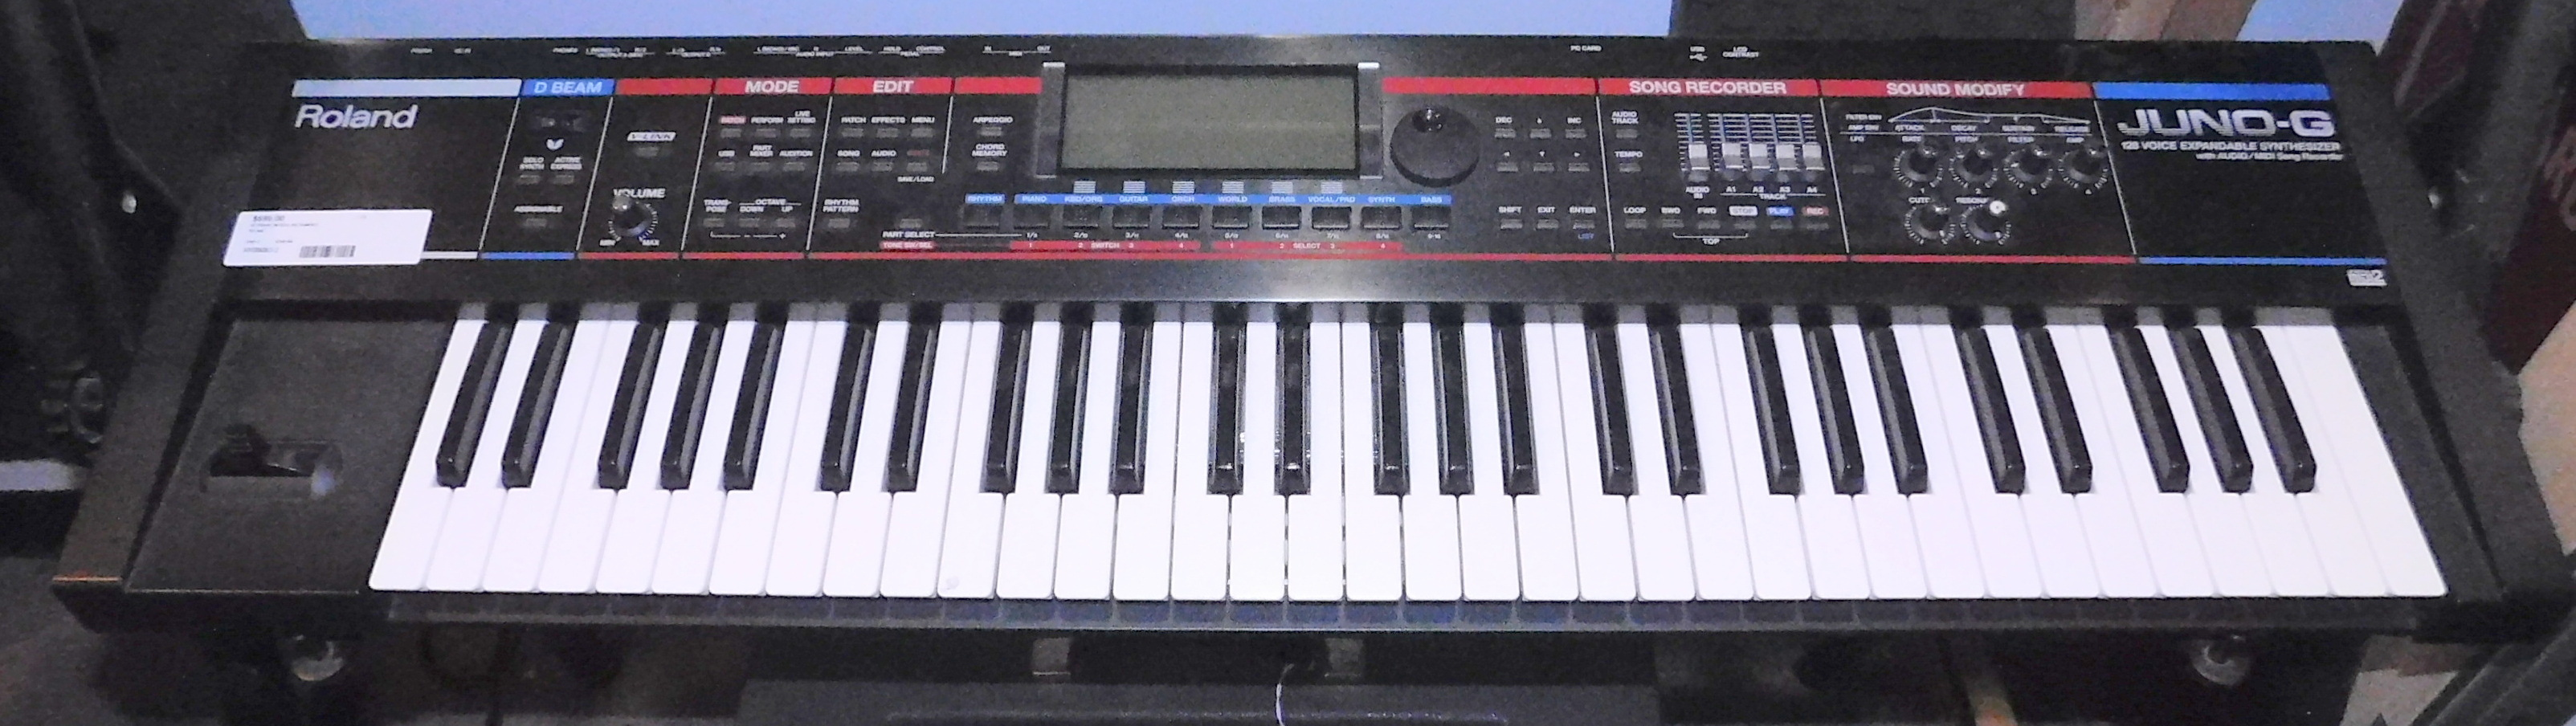 ROLAND JUNO-G 61 KEY Keyboard SYNTHESIZER w/POWER SUPPLY